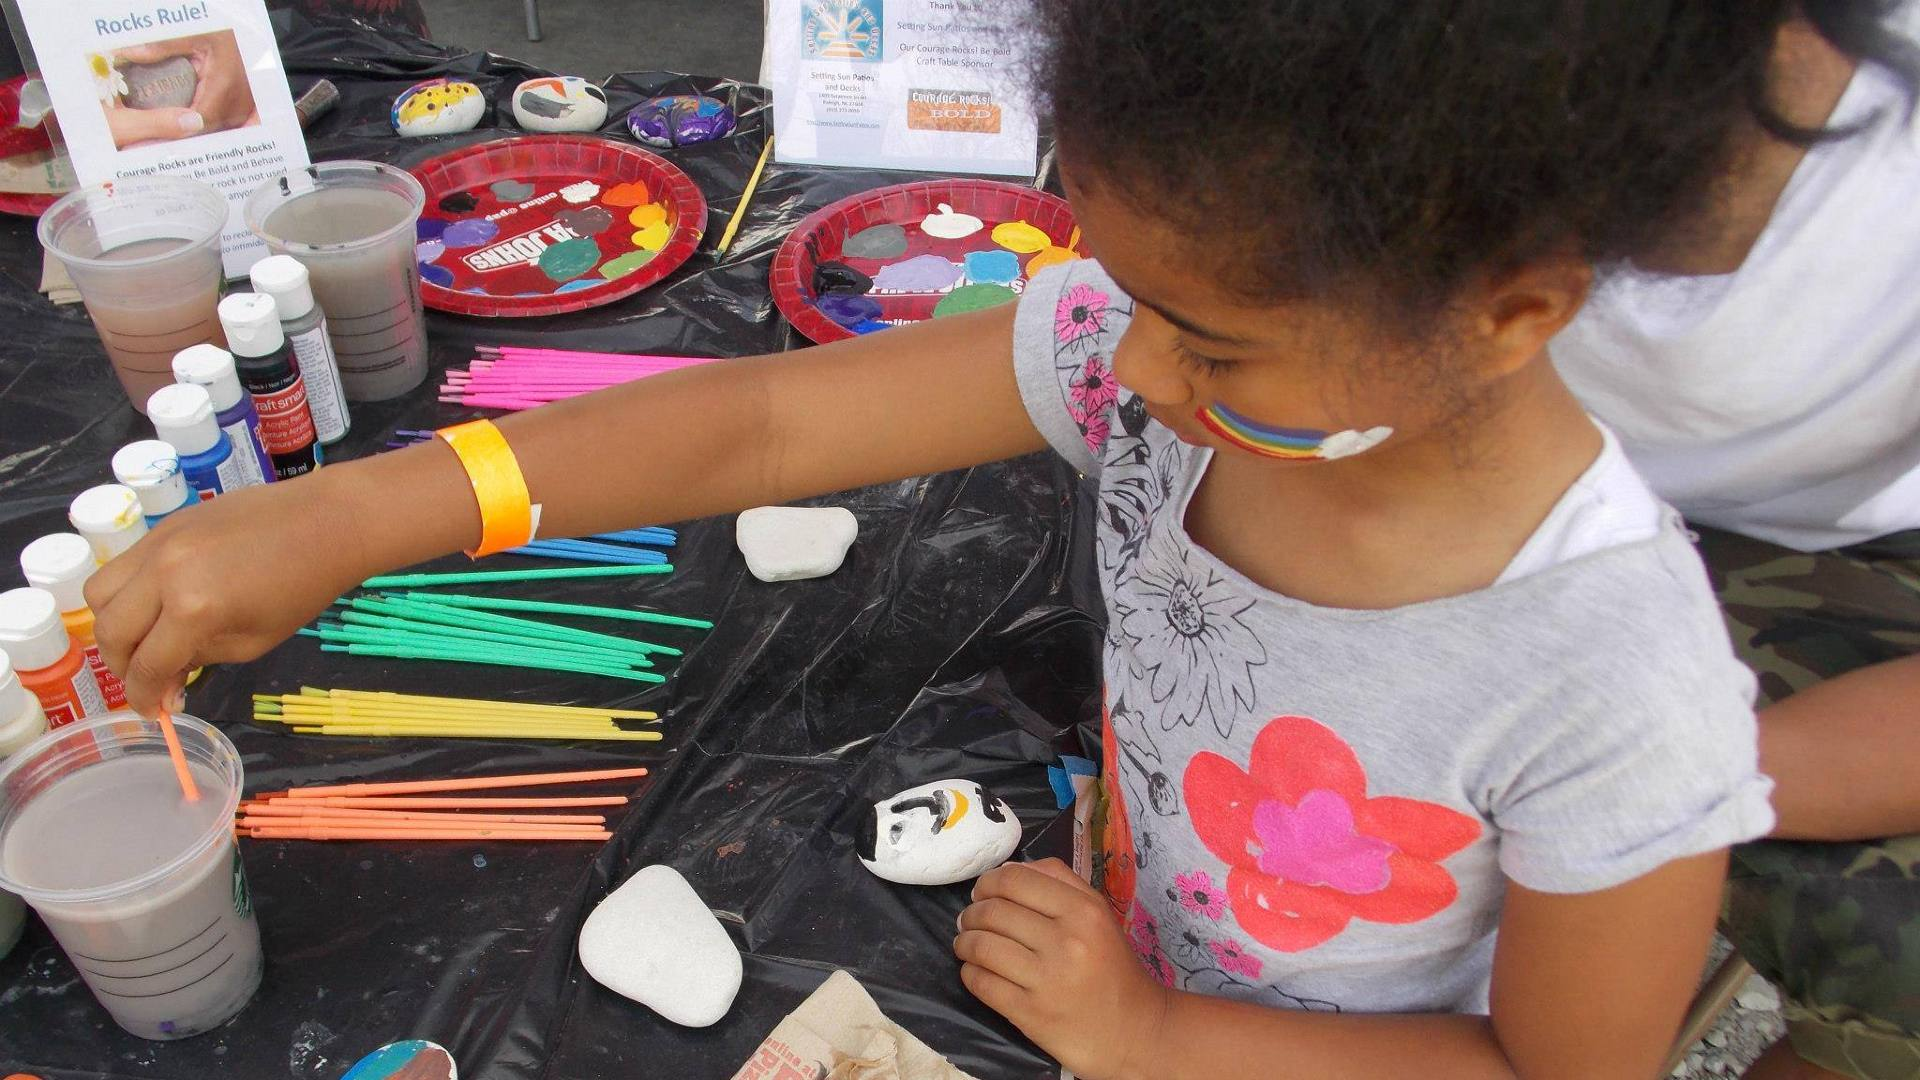 A girl paints rocks at a local event